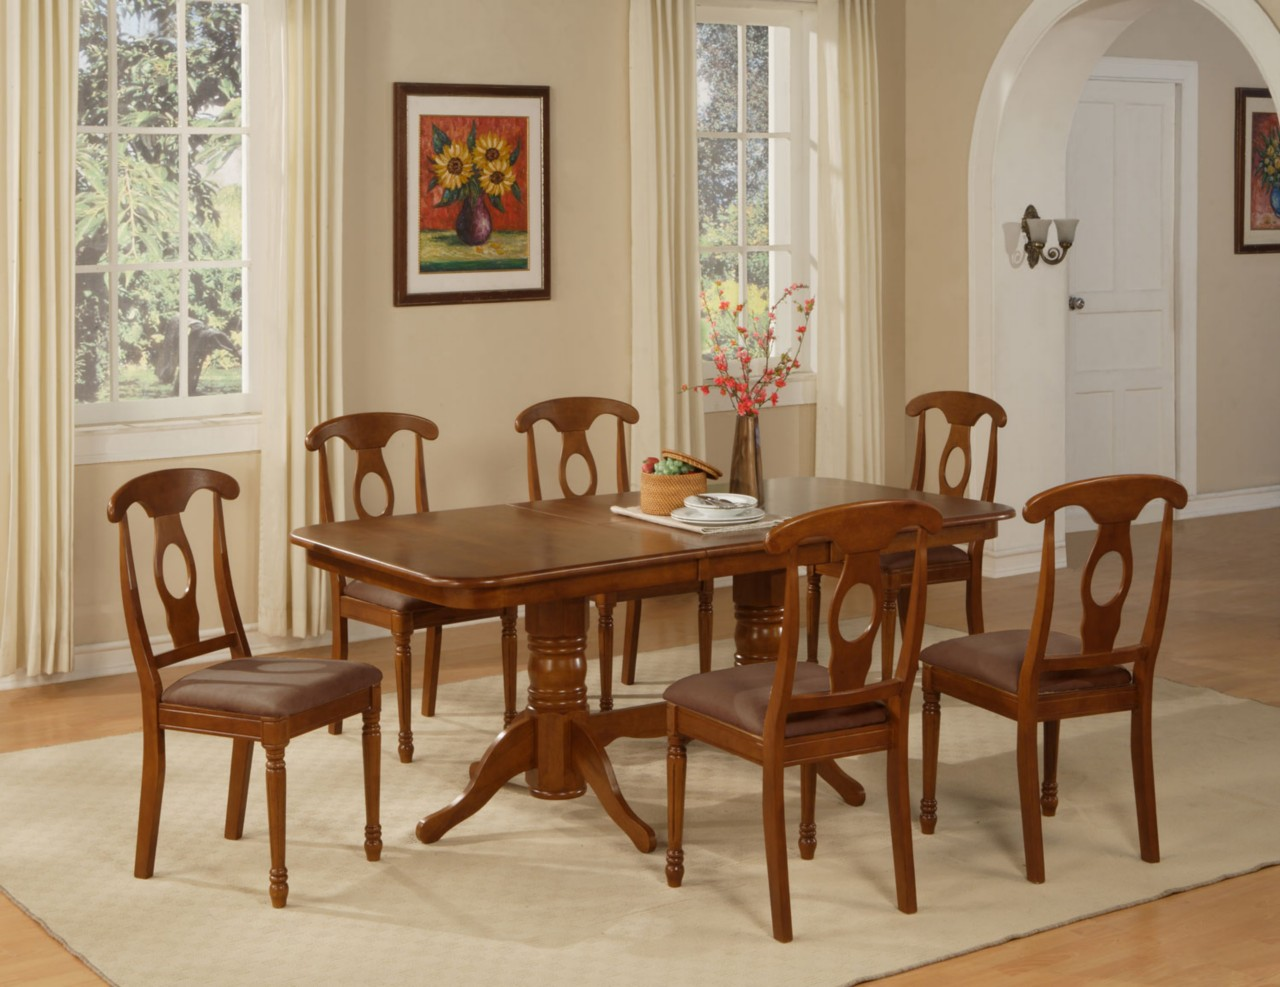 Dining Room Upholstered Chairs Interior Decorating